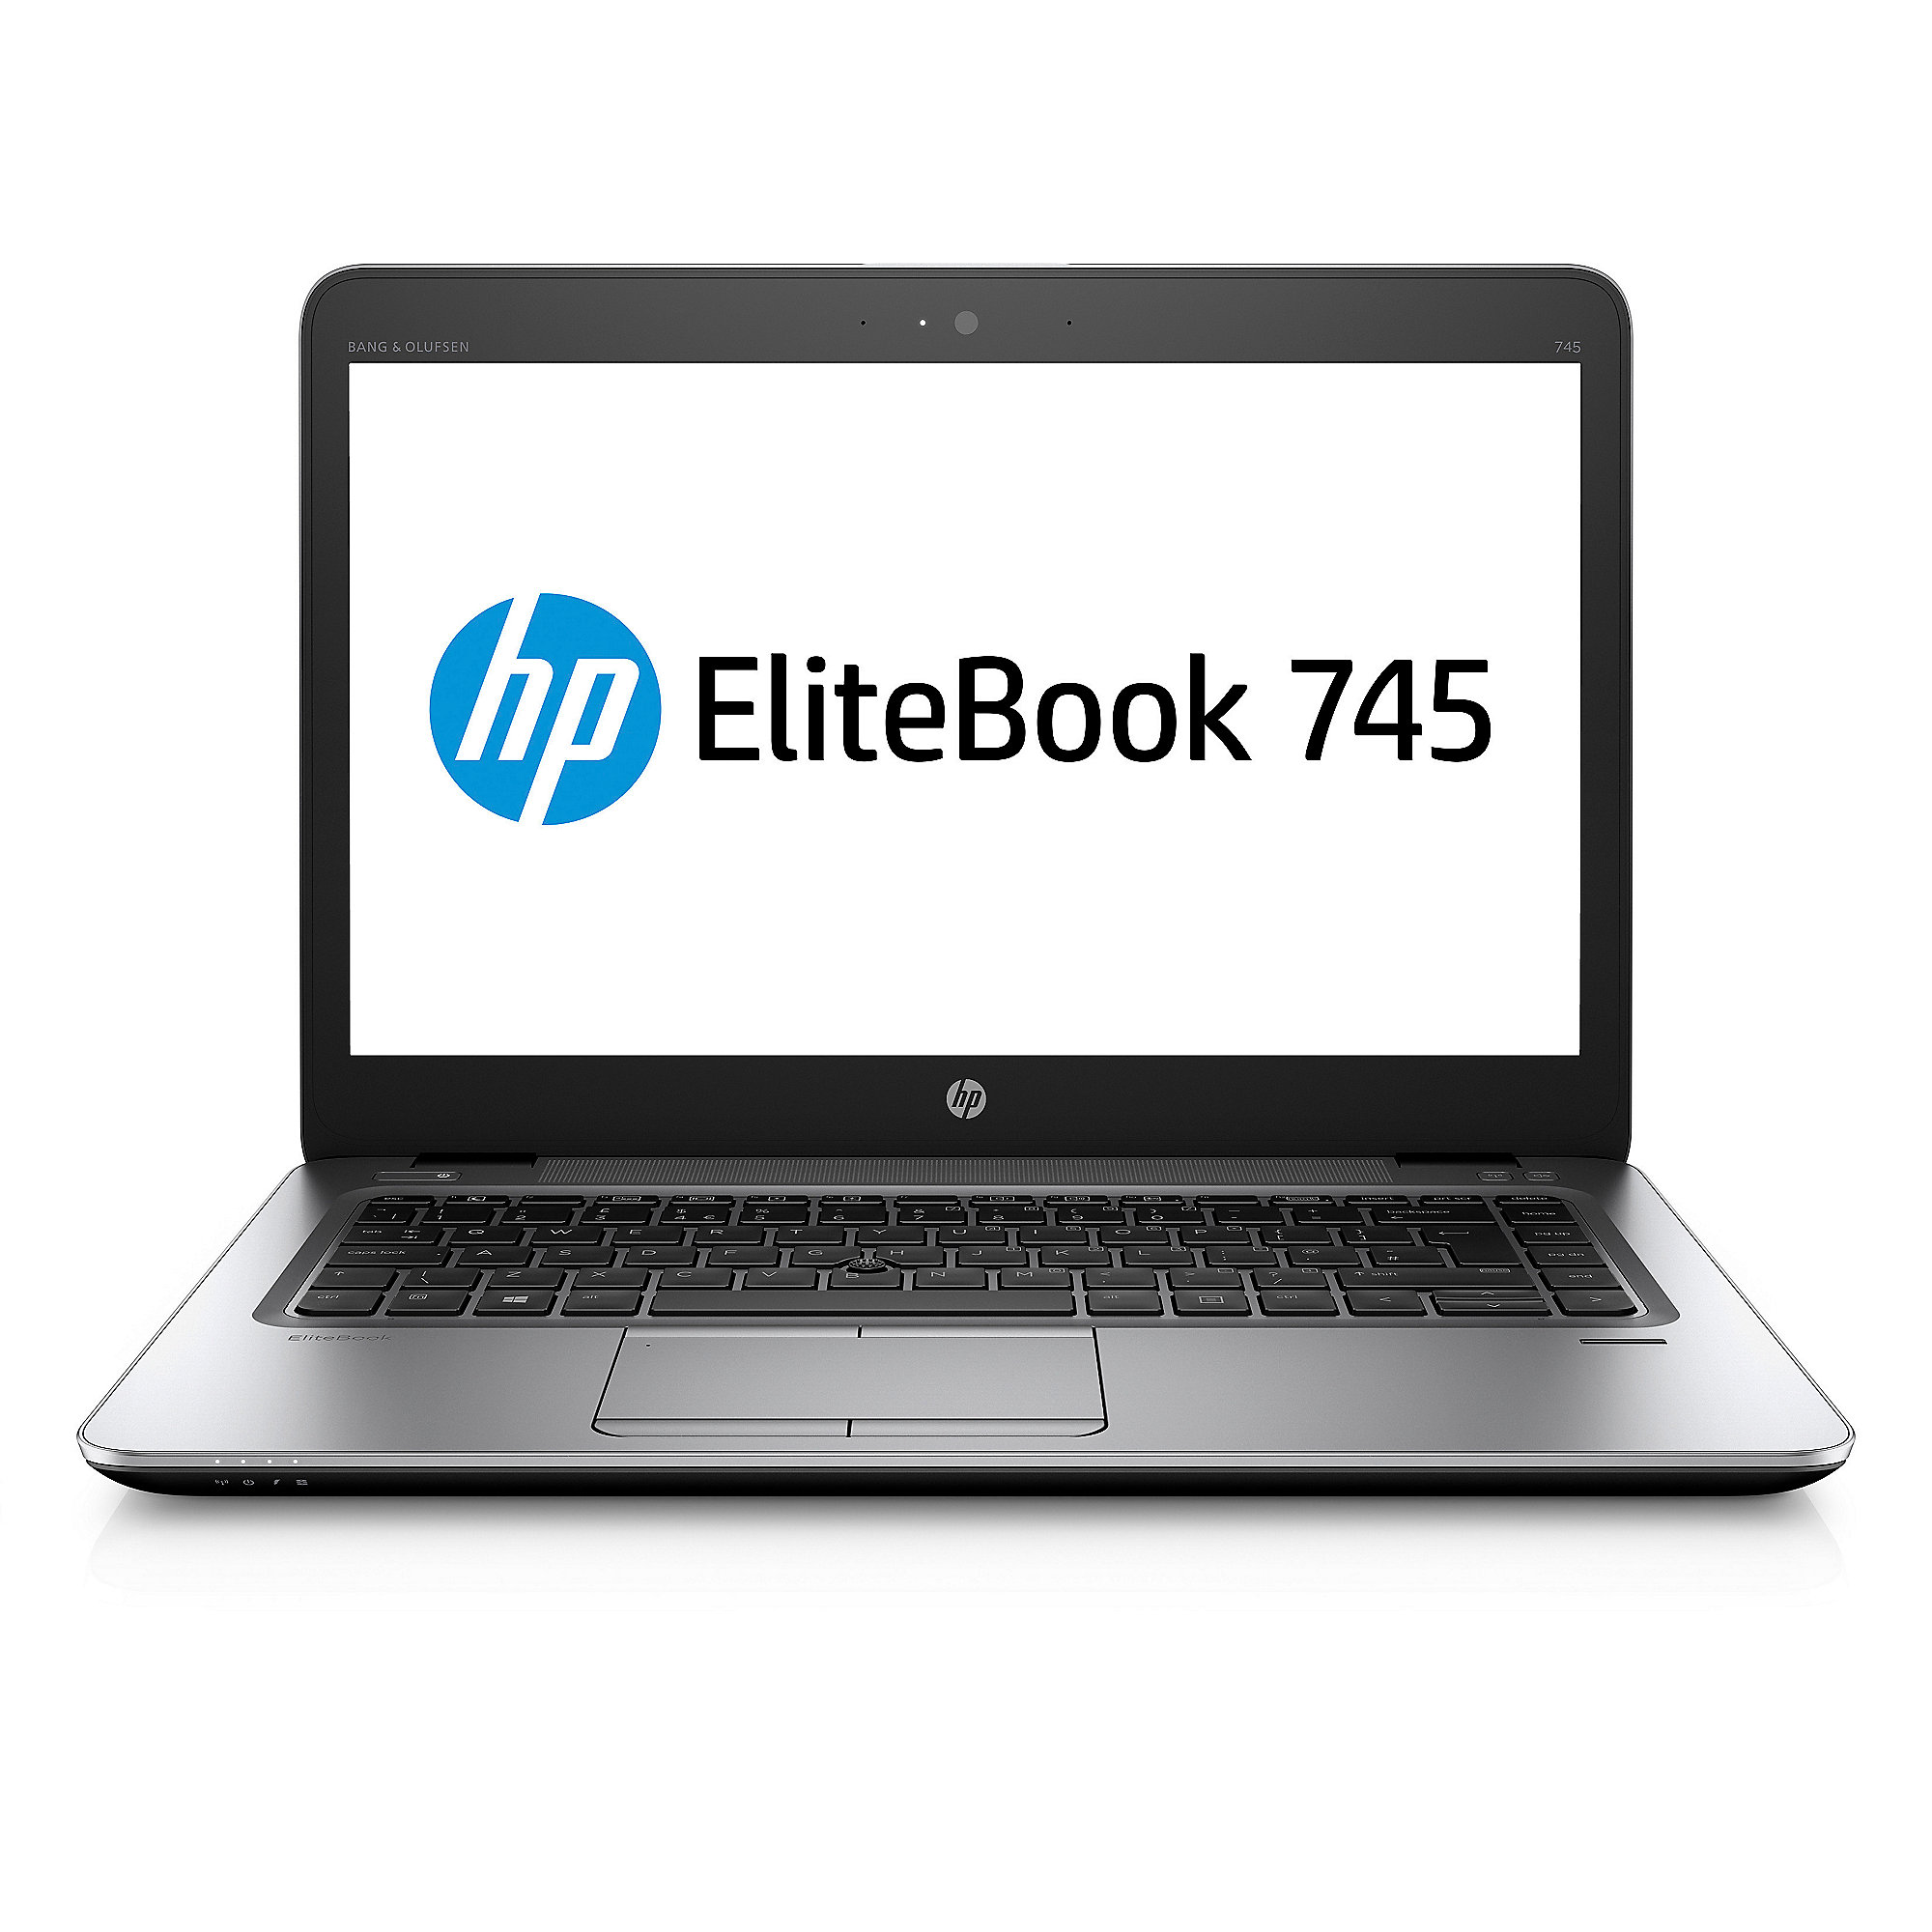 "HP EliteBook 745 G3 T4H58EA PRO A10-8700B 4GB/500GB 14"" HD W7/10P"